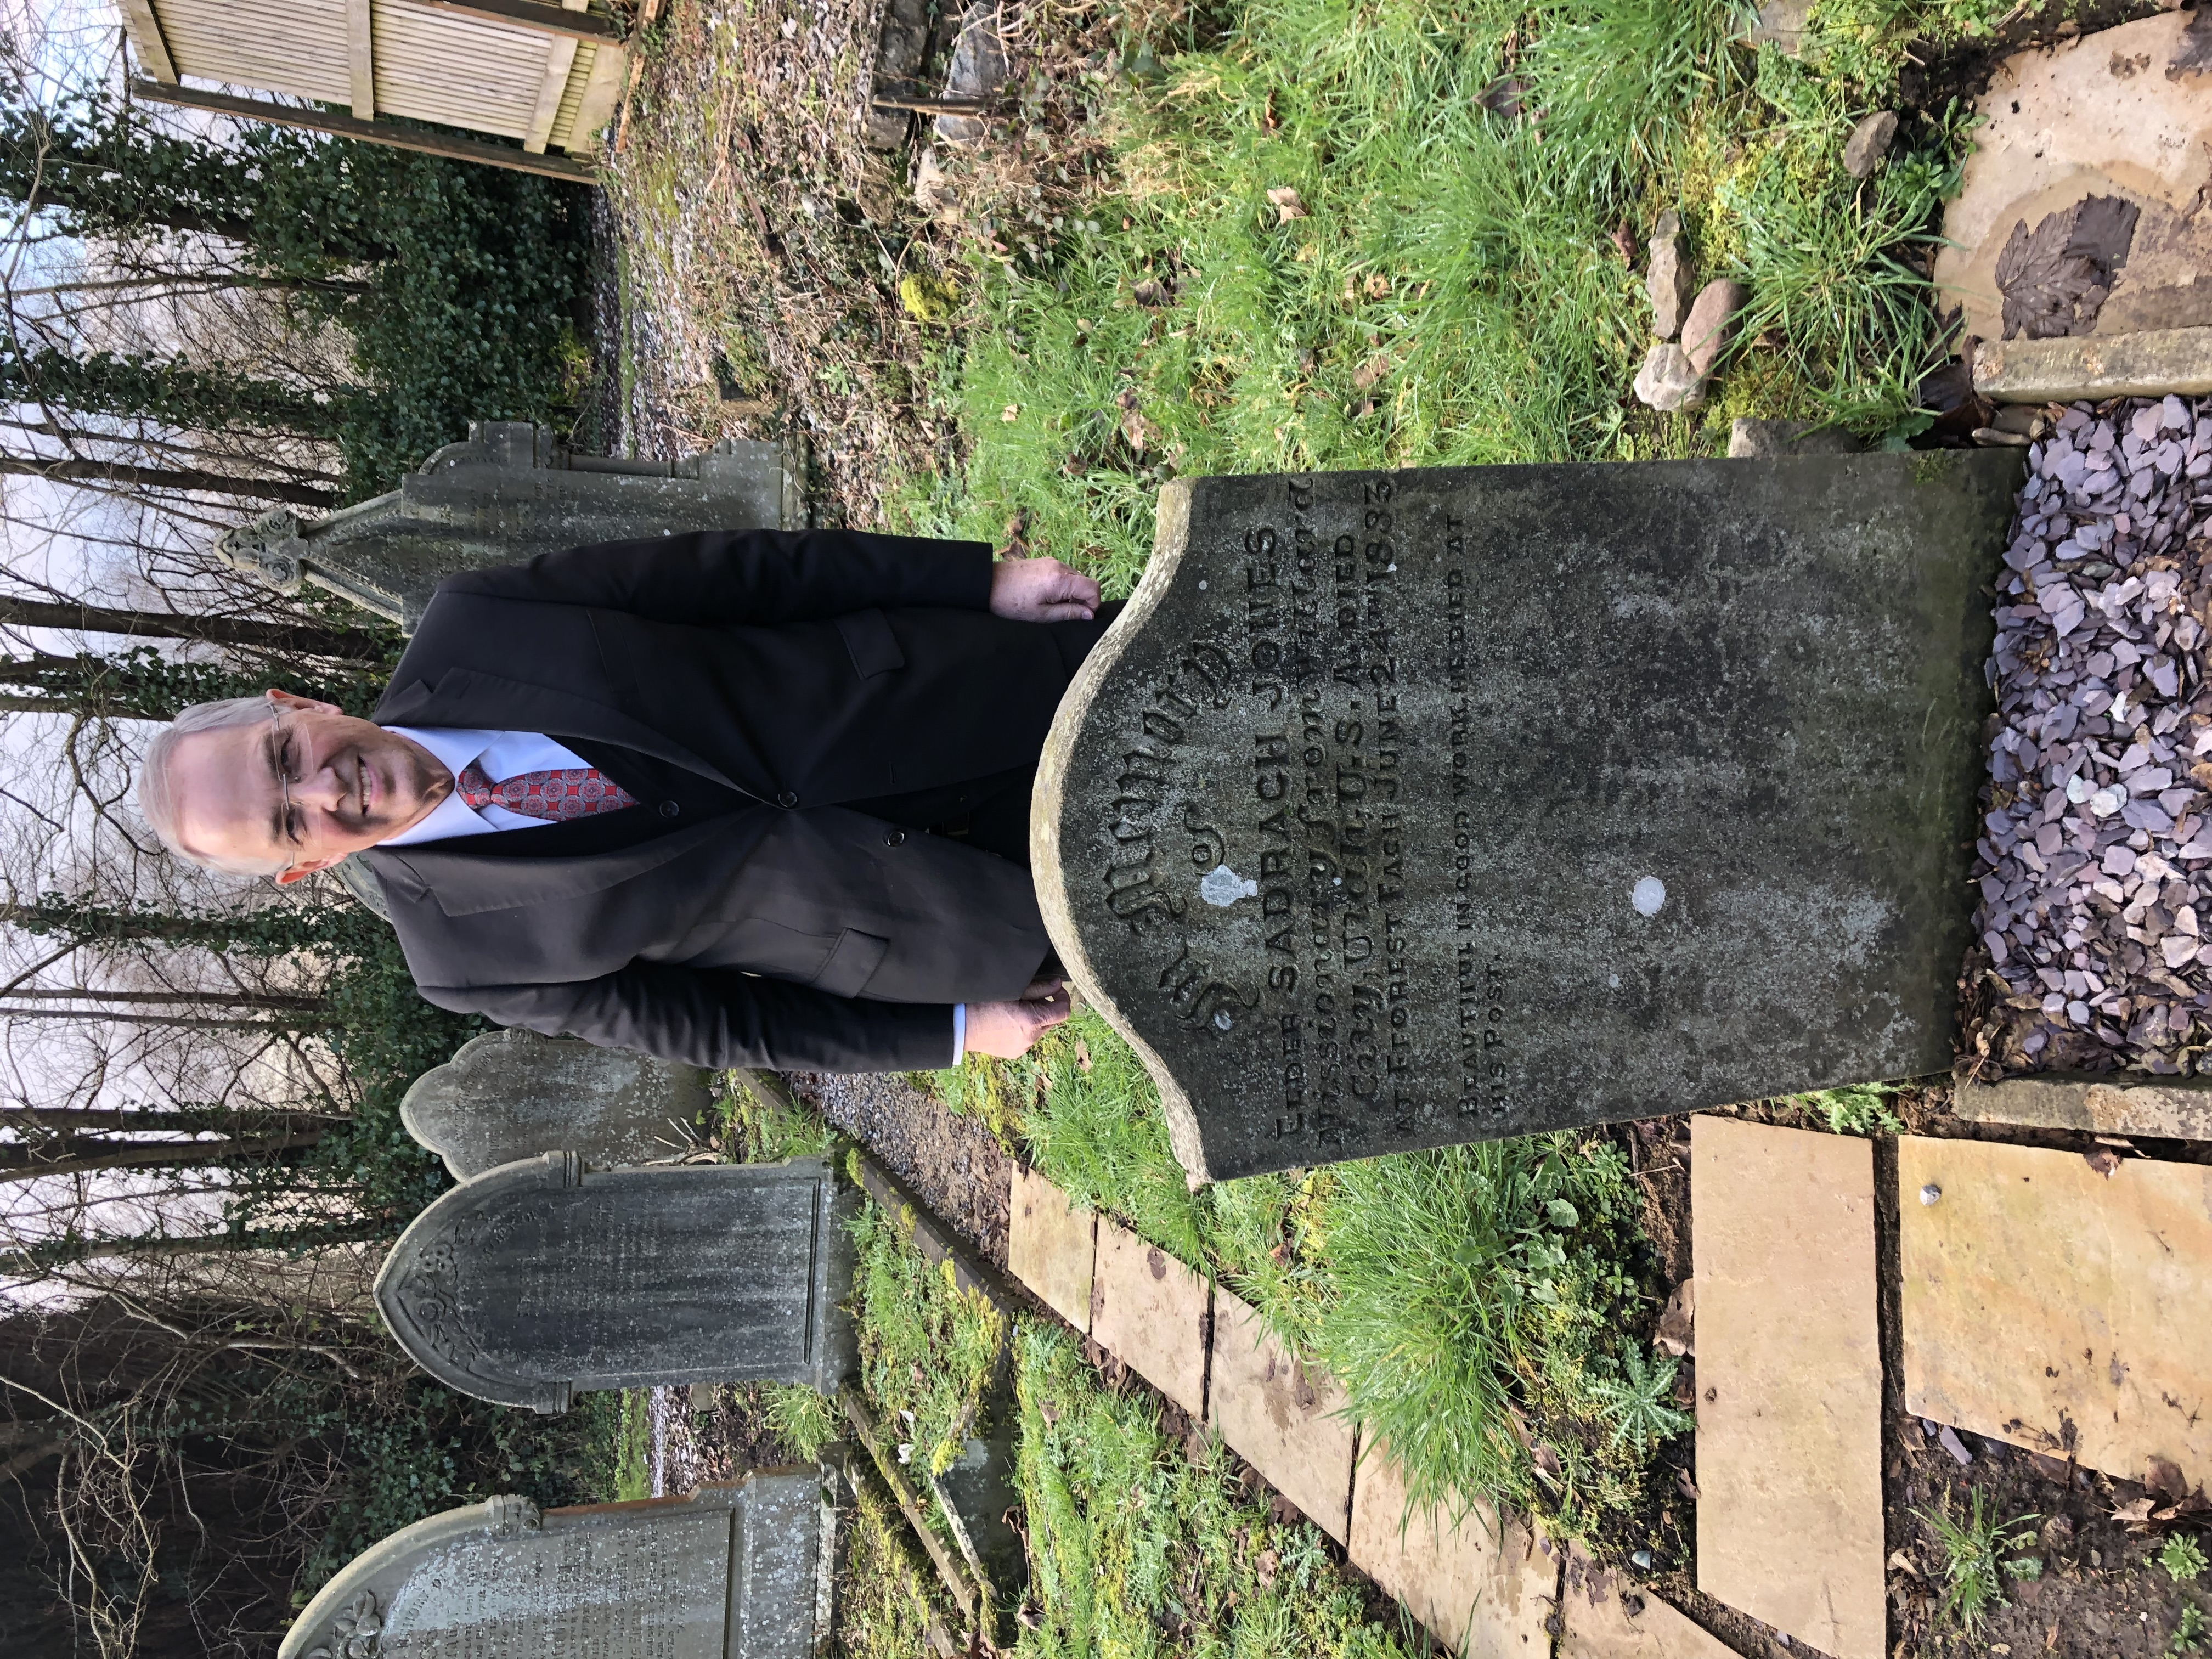 Elder Neil L. Andersen standing at the gravesite of Elder Sadrach Jones, a young man who emigrated to the United States and returned later to Wales as a missionary of the Church. He died while still a missionary in Wales in 1883.